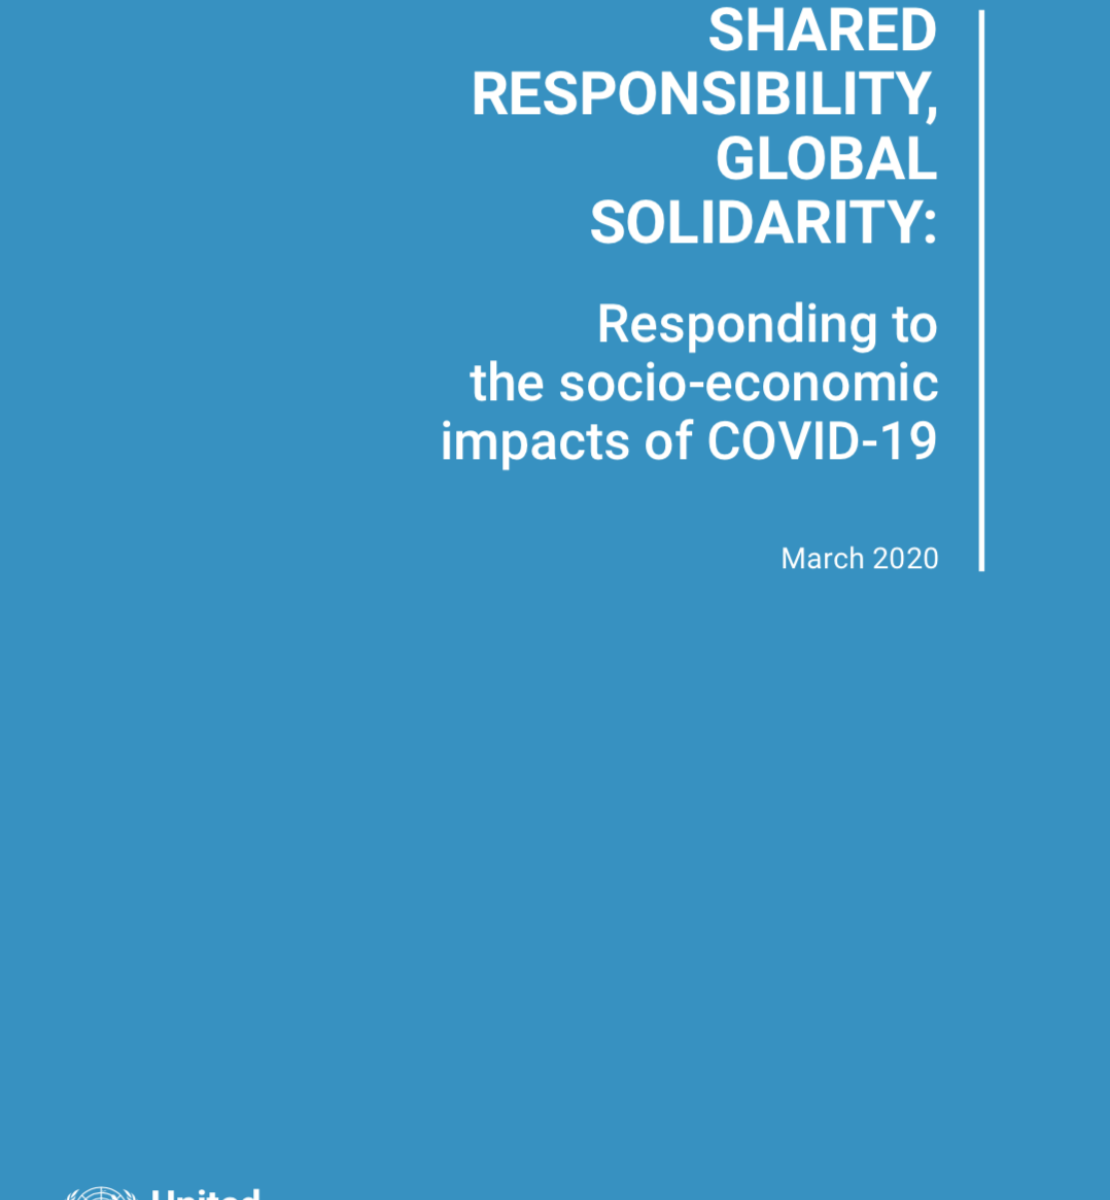 """Cover shows the title """"Shared Responsibility, Global Solidarity: Responding to the socio-economic impacts of COVID-19"""" against a solid background with the UN logo on the bottom left."""